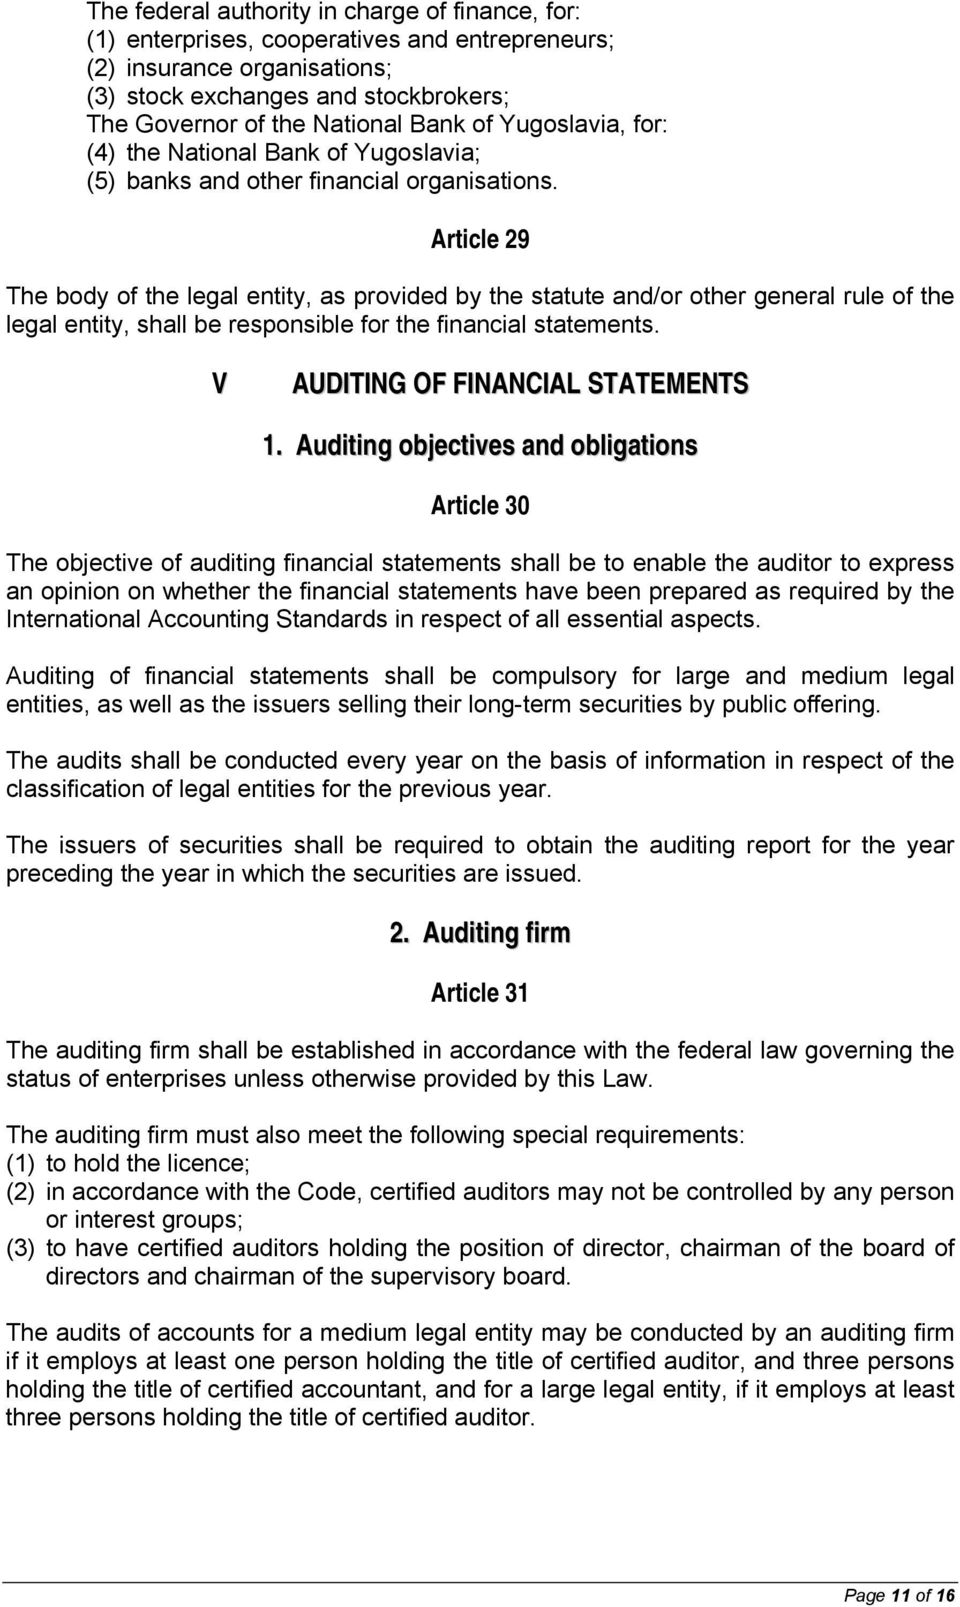 Article 29 The body of the legal entity, as provided by the statute and/or other general rule of the legal entity, shall be responsible for the financial statements.